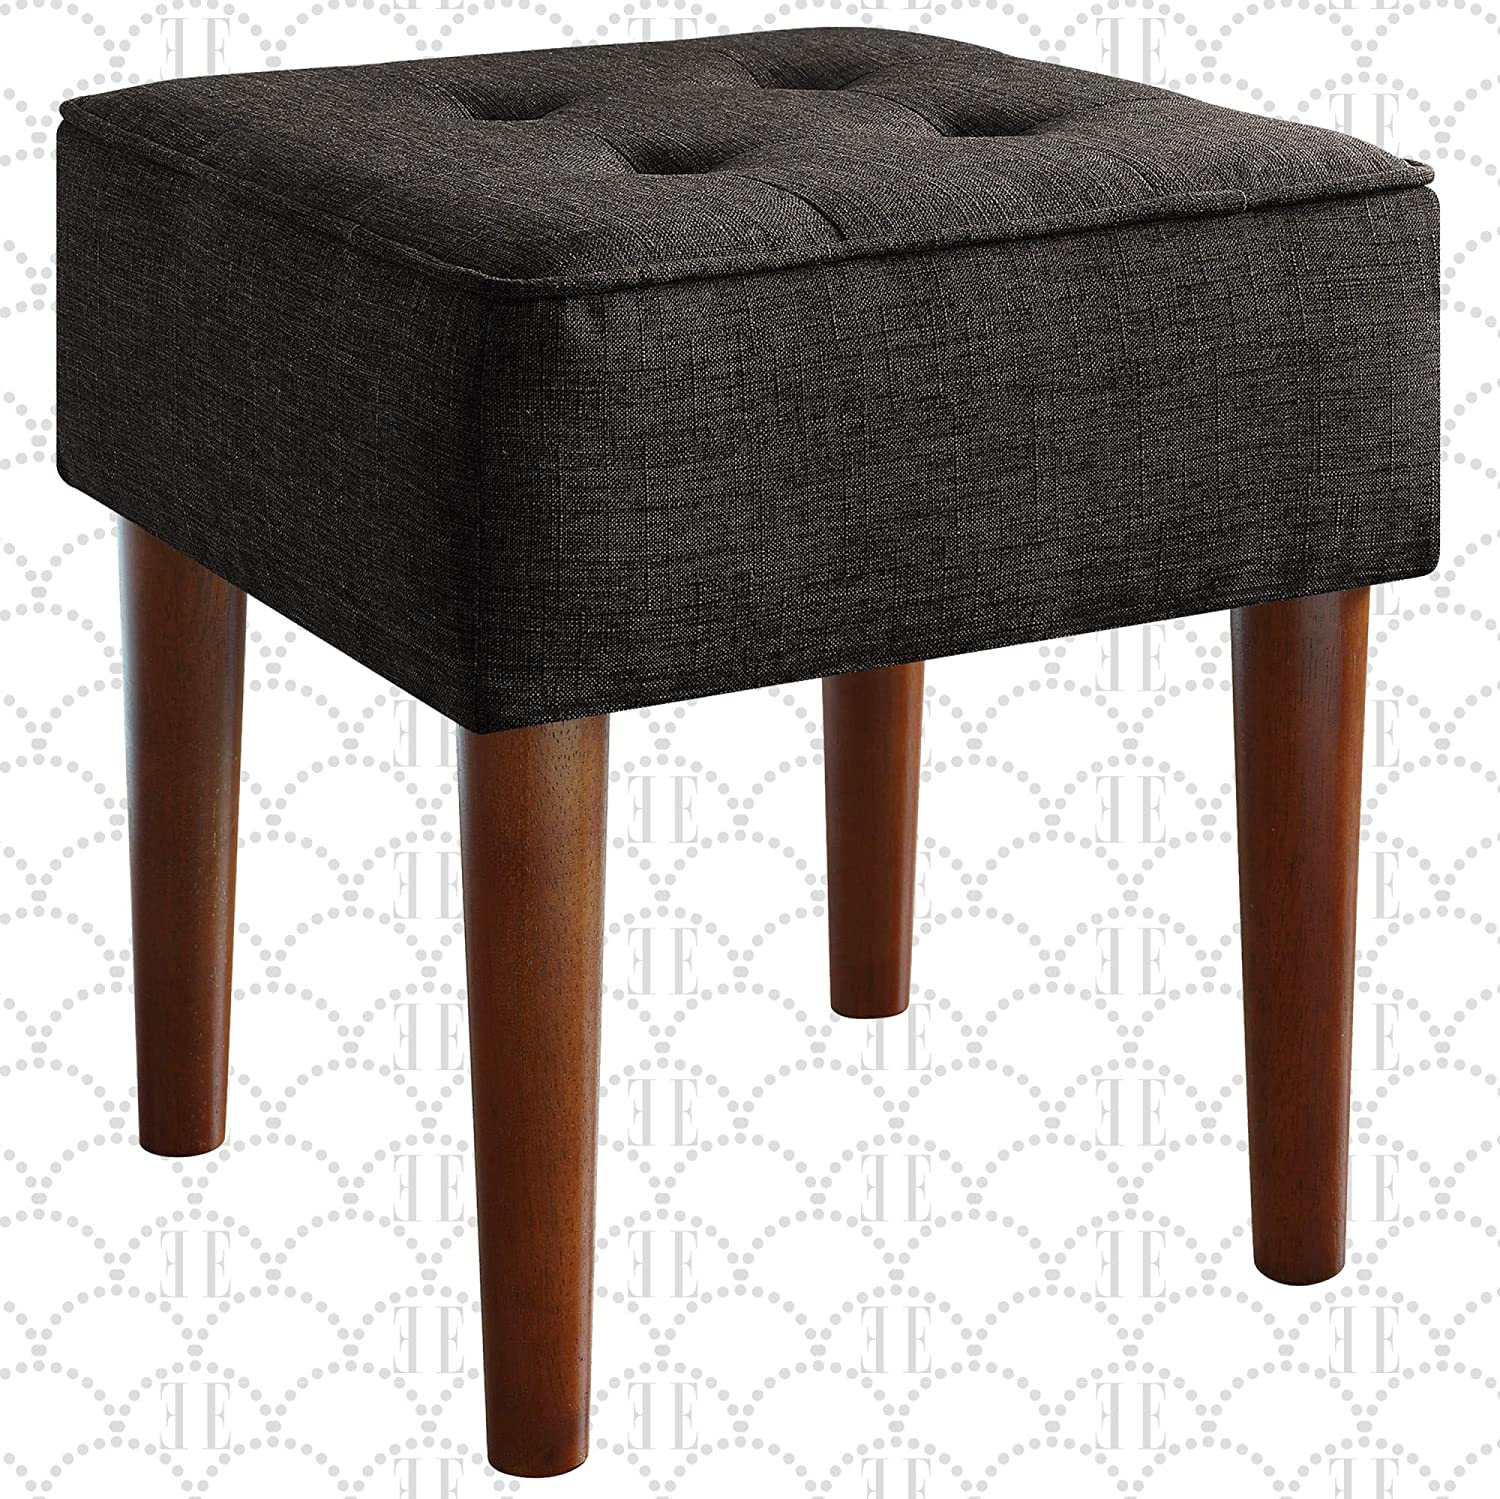 Elle Decor Aria Upholstered Ottoman Food Rest Stool with Classic Button Tufted Style, Extra Seating for Modern Home, Compact Size for Small Space, Gray